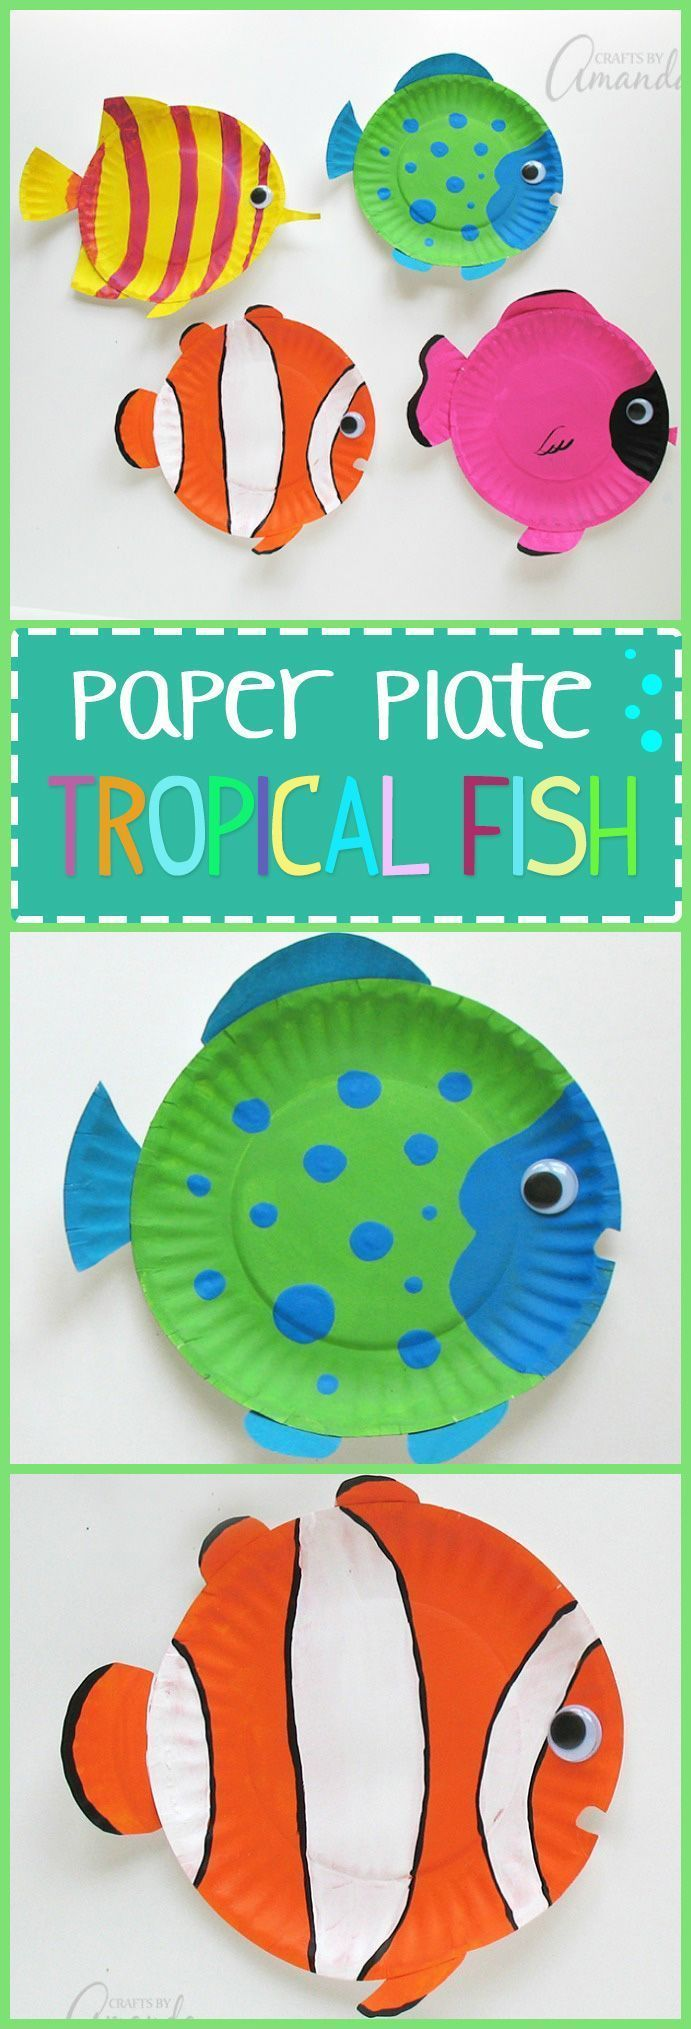 These paper plate tropical fish have bright, cheery and vibrant colors. There's no doubt that your children will love making this paper plate craft!